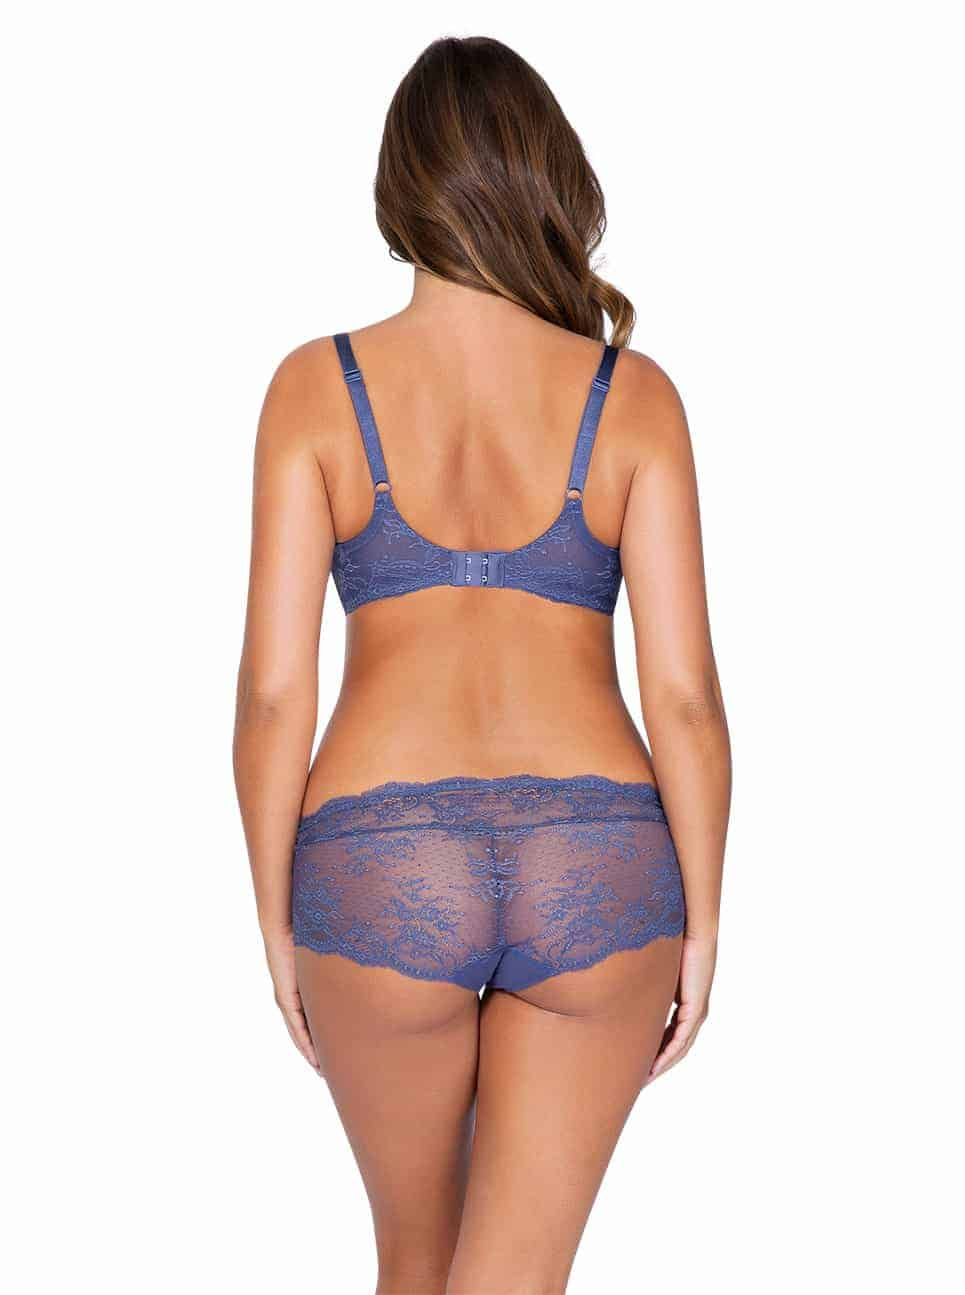 Sandrine P5352 UnlinedWire P5355 Hipster FrenchBlue back - Sandrine Unlined Wire Bra - French Blue - P5352